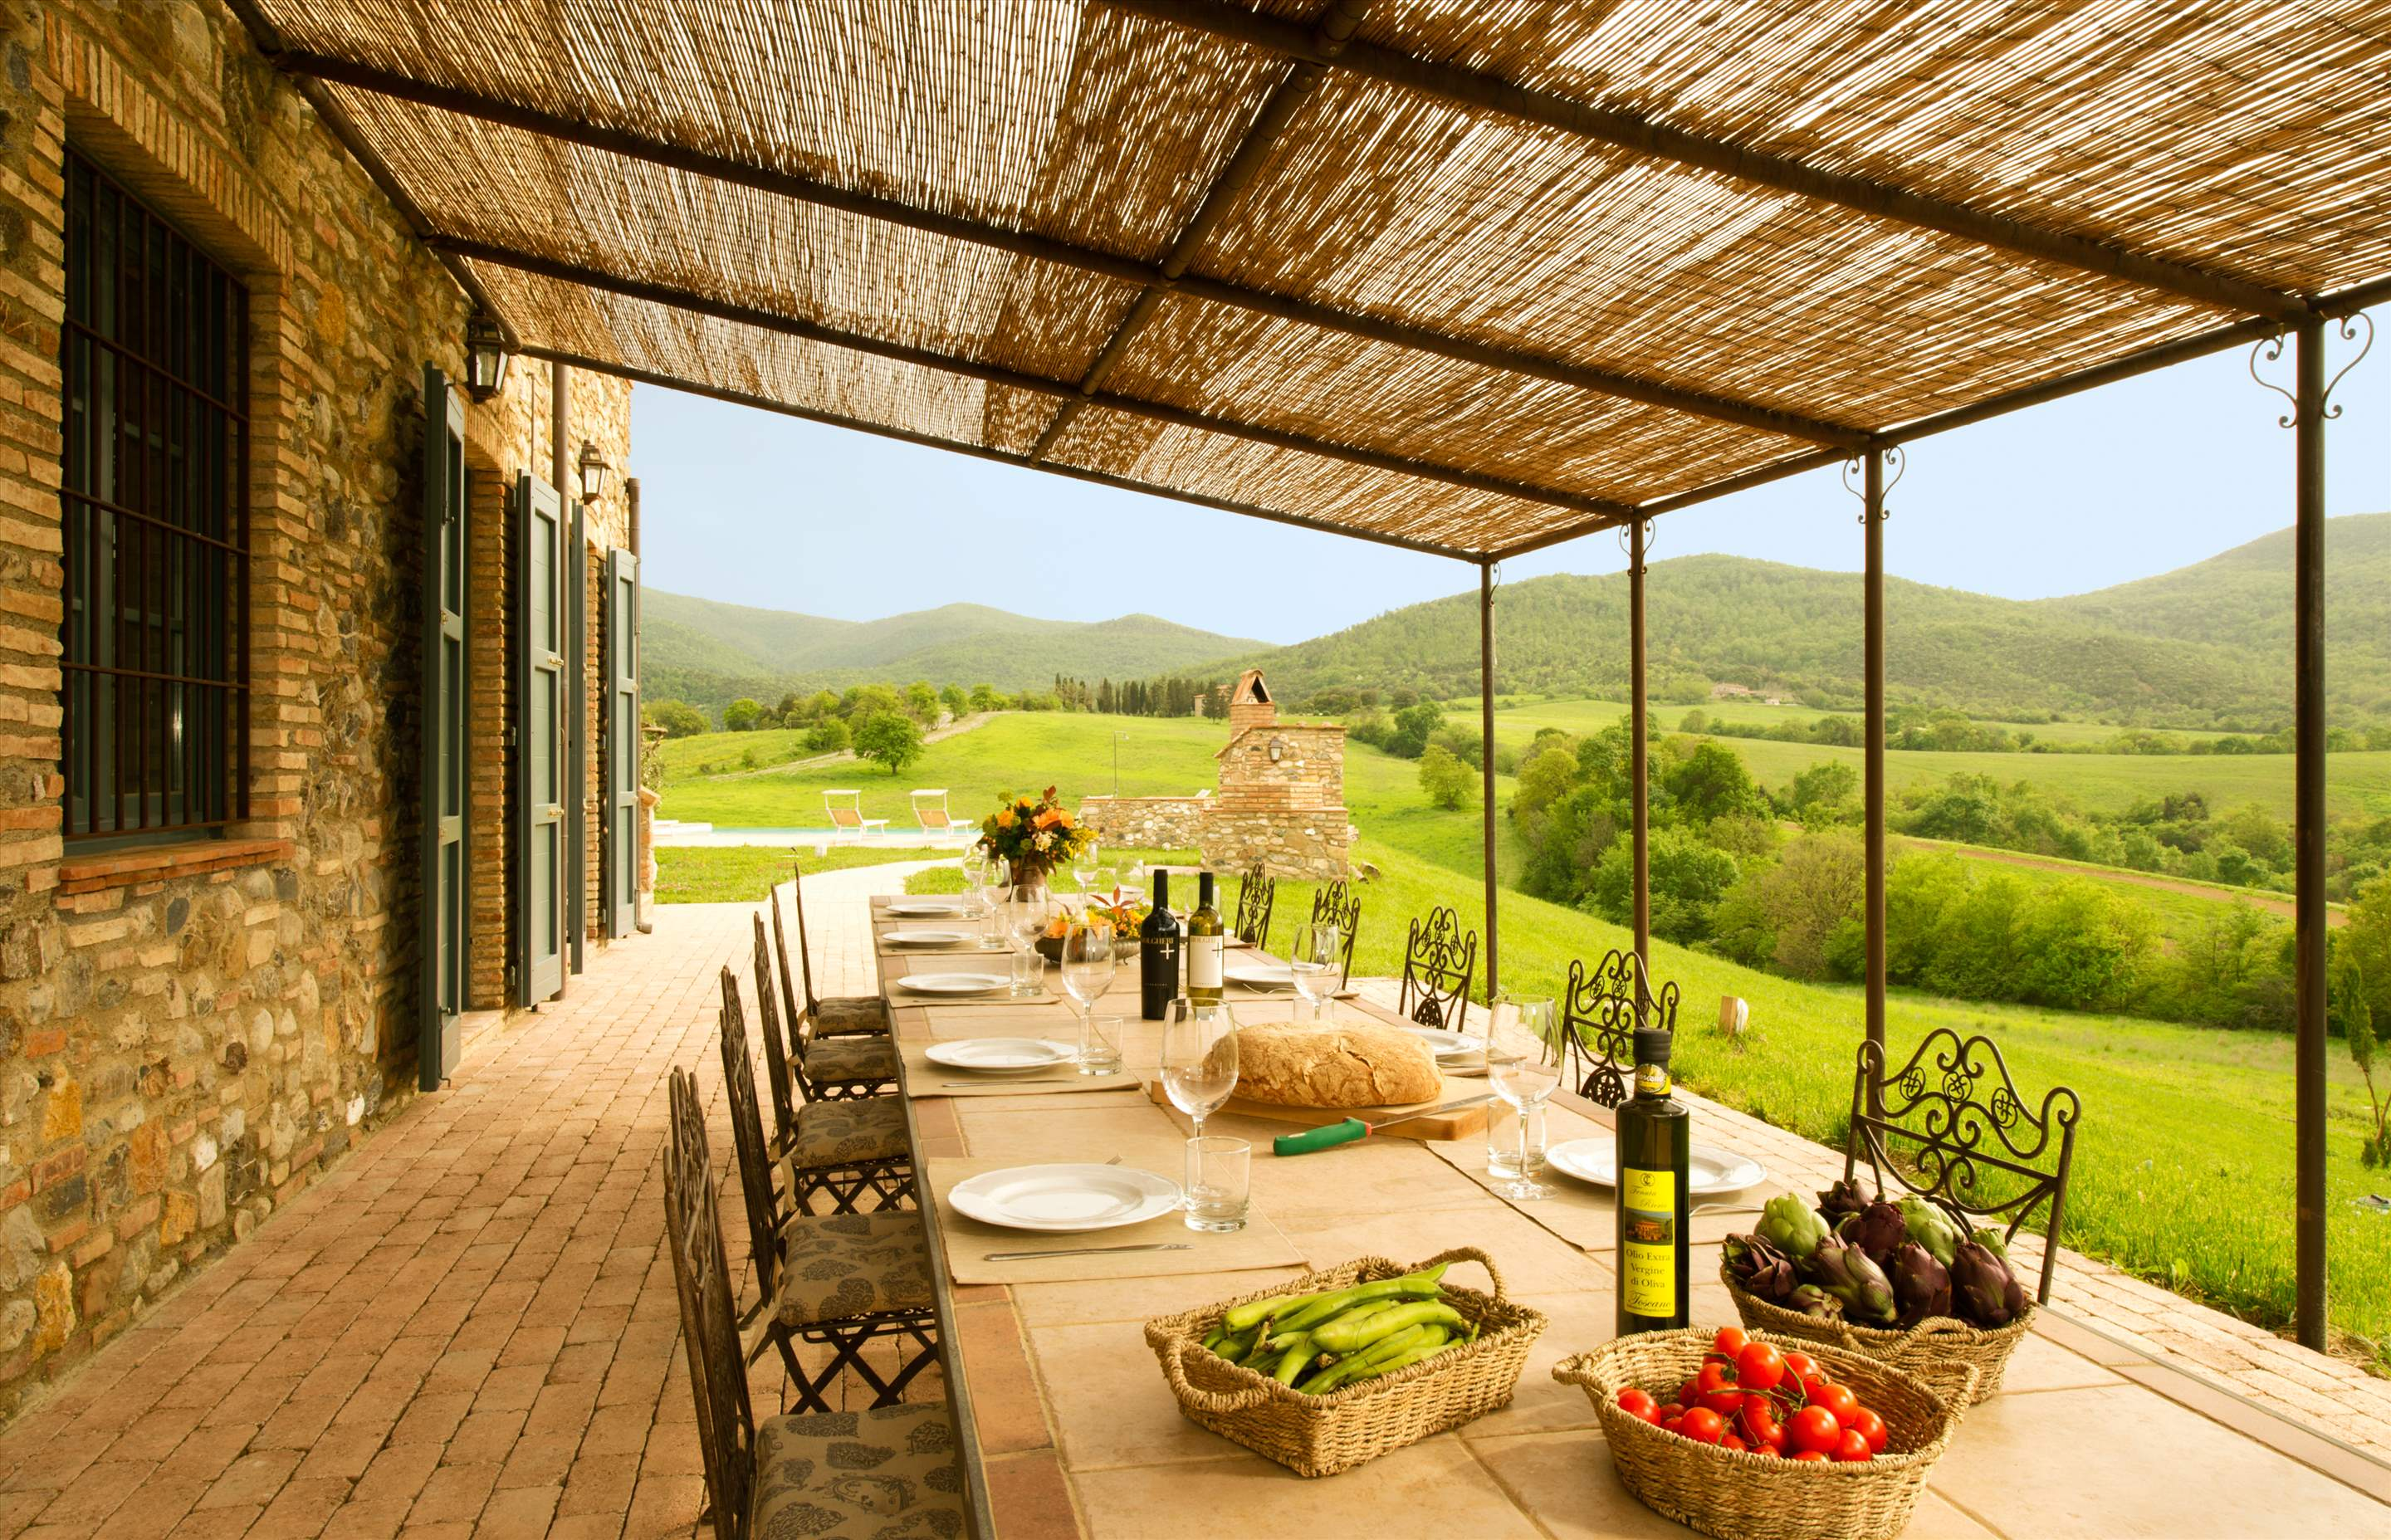 Podere Casacce, Ground Floor, 4 bedroom villa in Tuscany Coast, Tuscany Photo #16